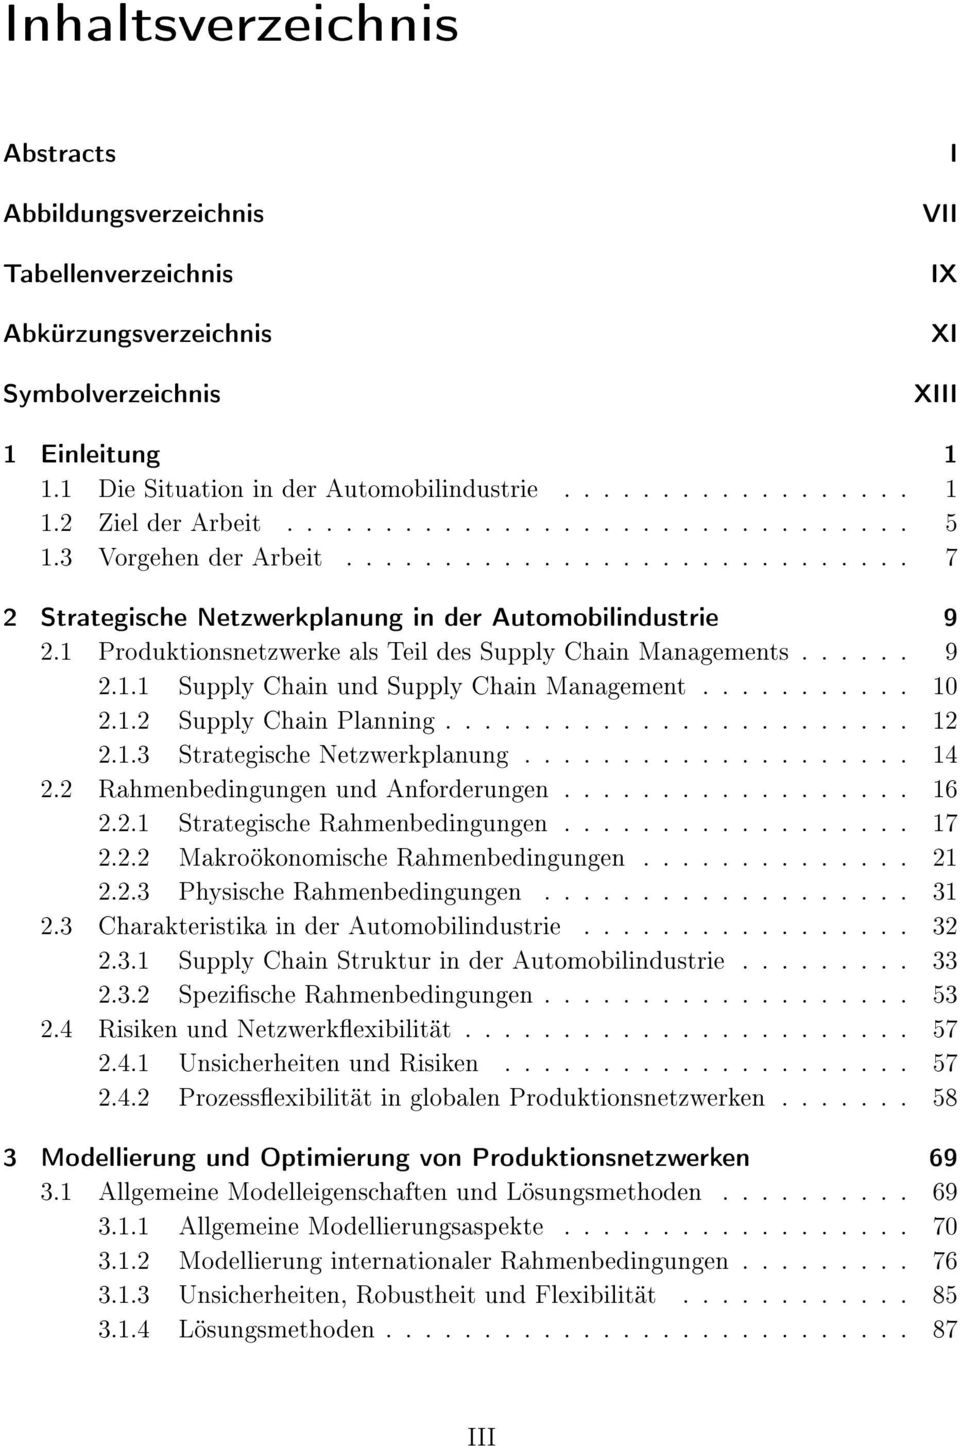 1 Produktionsnetzwerke als Teil des Supply Chain Managements...... 9 2.1.1 Supply Chain und Supply Chain Management........... 10 2.1.2 Supply Chain Planning........................ 12 2.1.3 Strategische Netzwerkplanung.